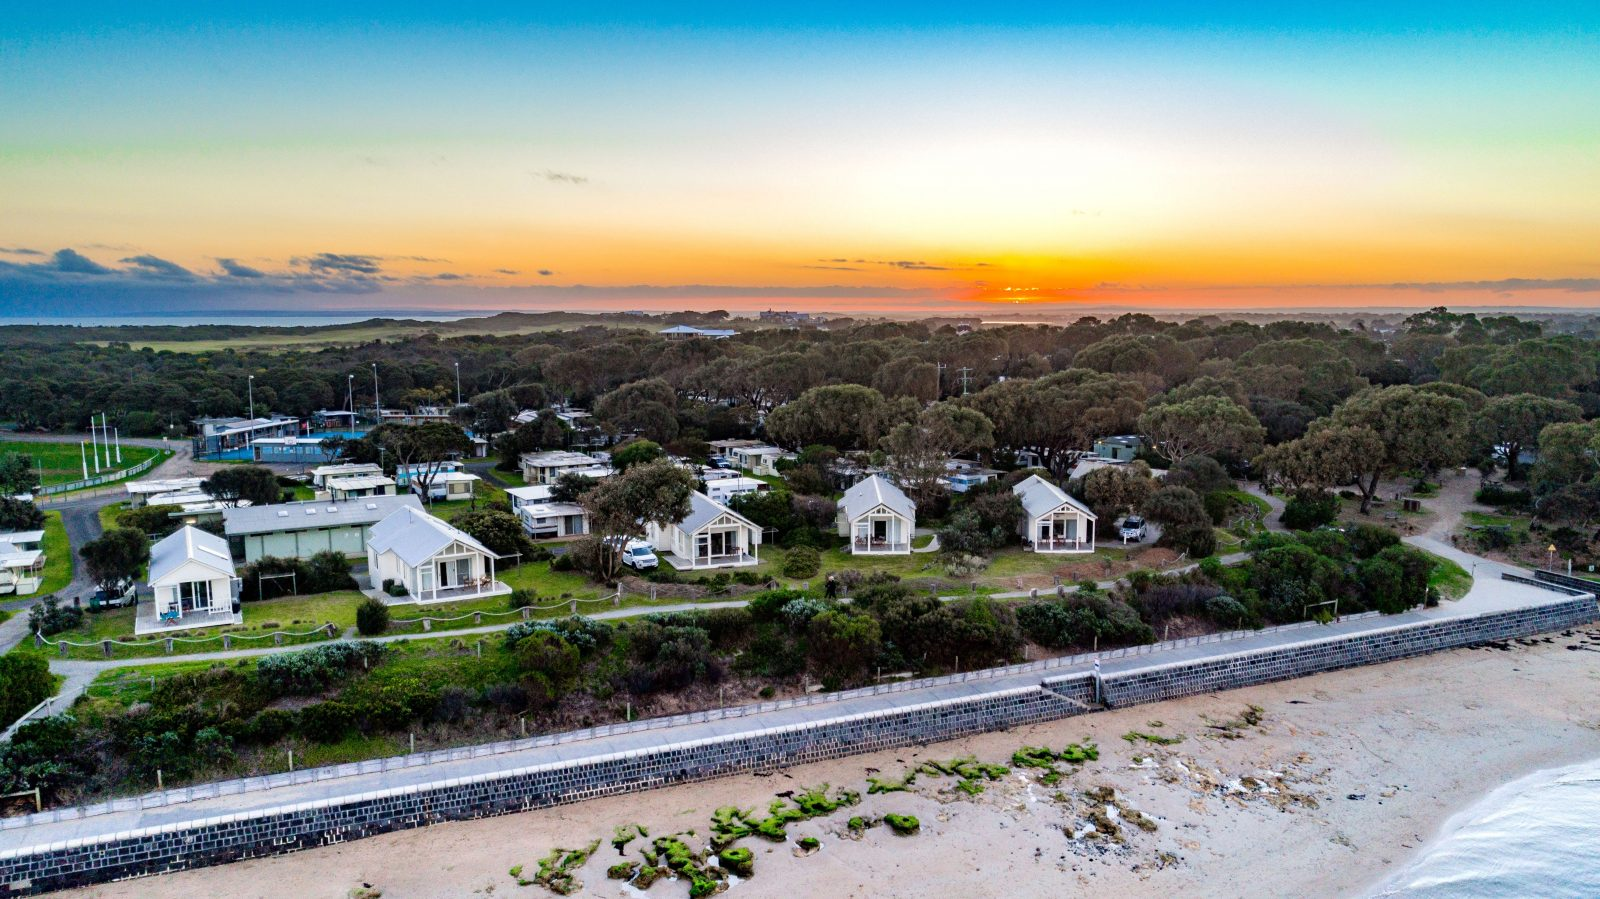 Sunset over our waterfront beach houses at the Barwon Heads Caravan Park